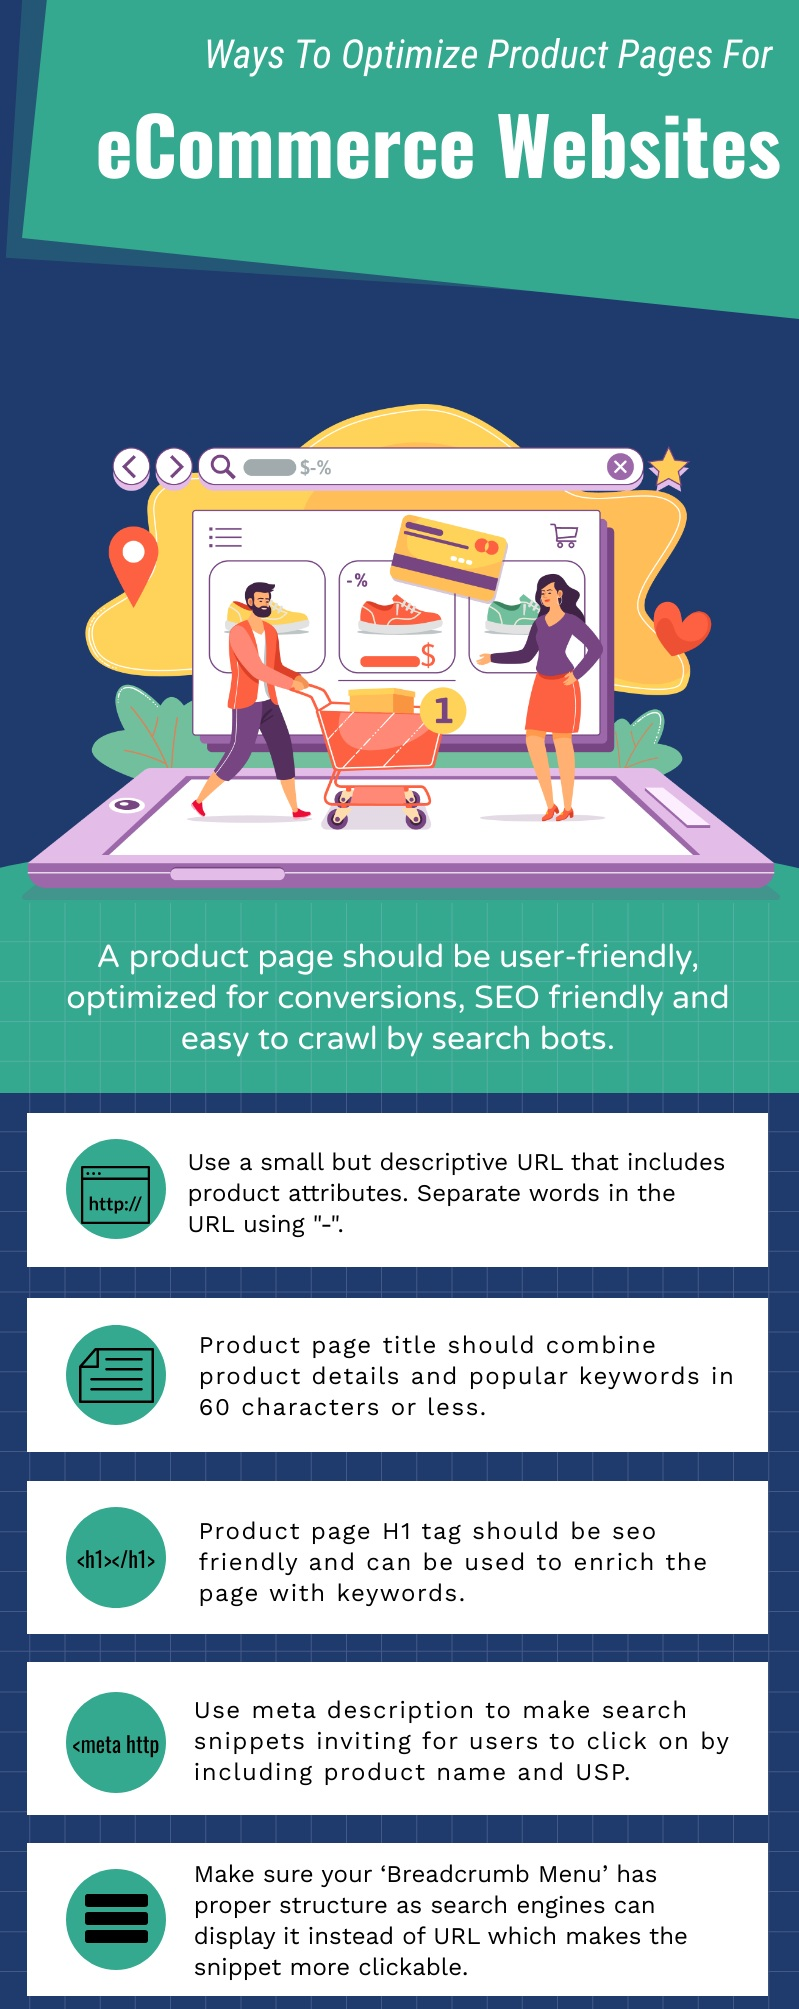 Ways-To-Optimize-Product-Pages-For-eCommerce-Websites